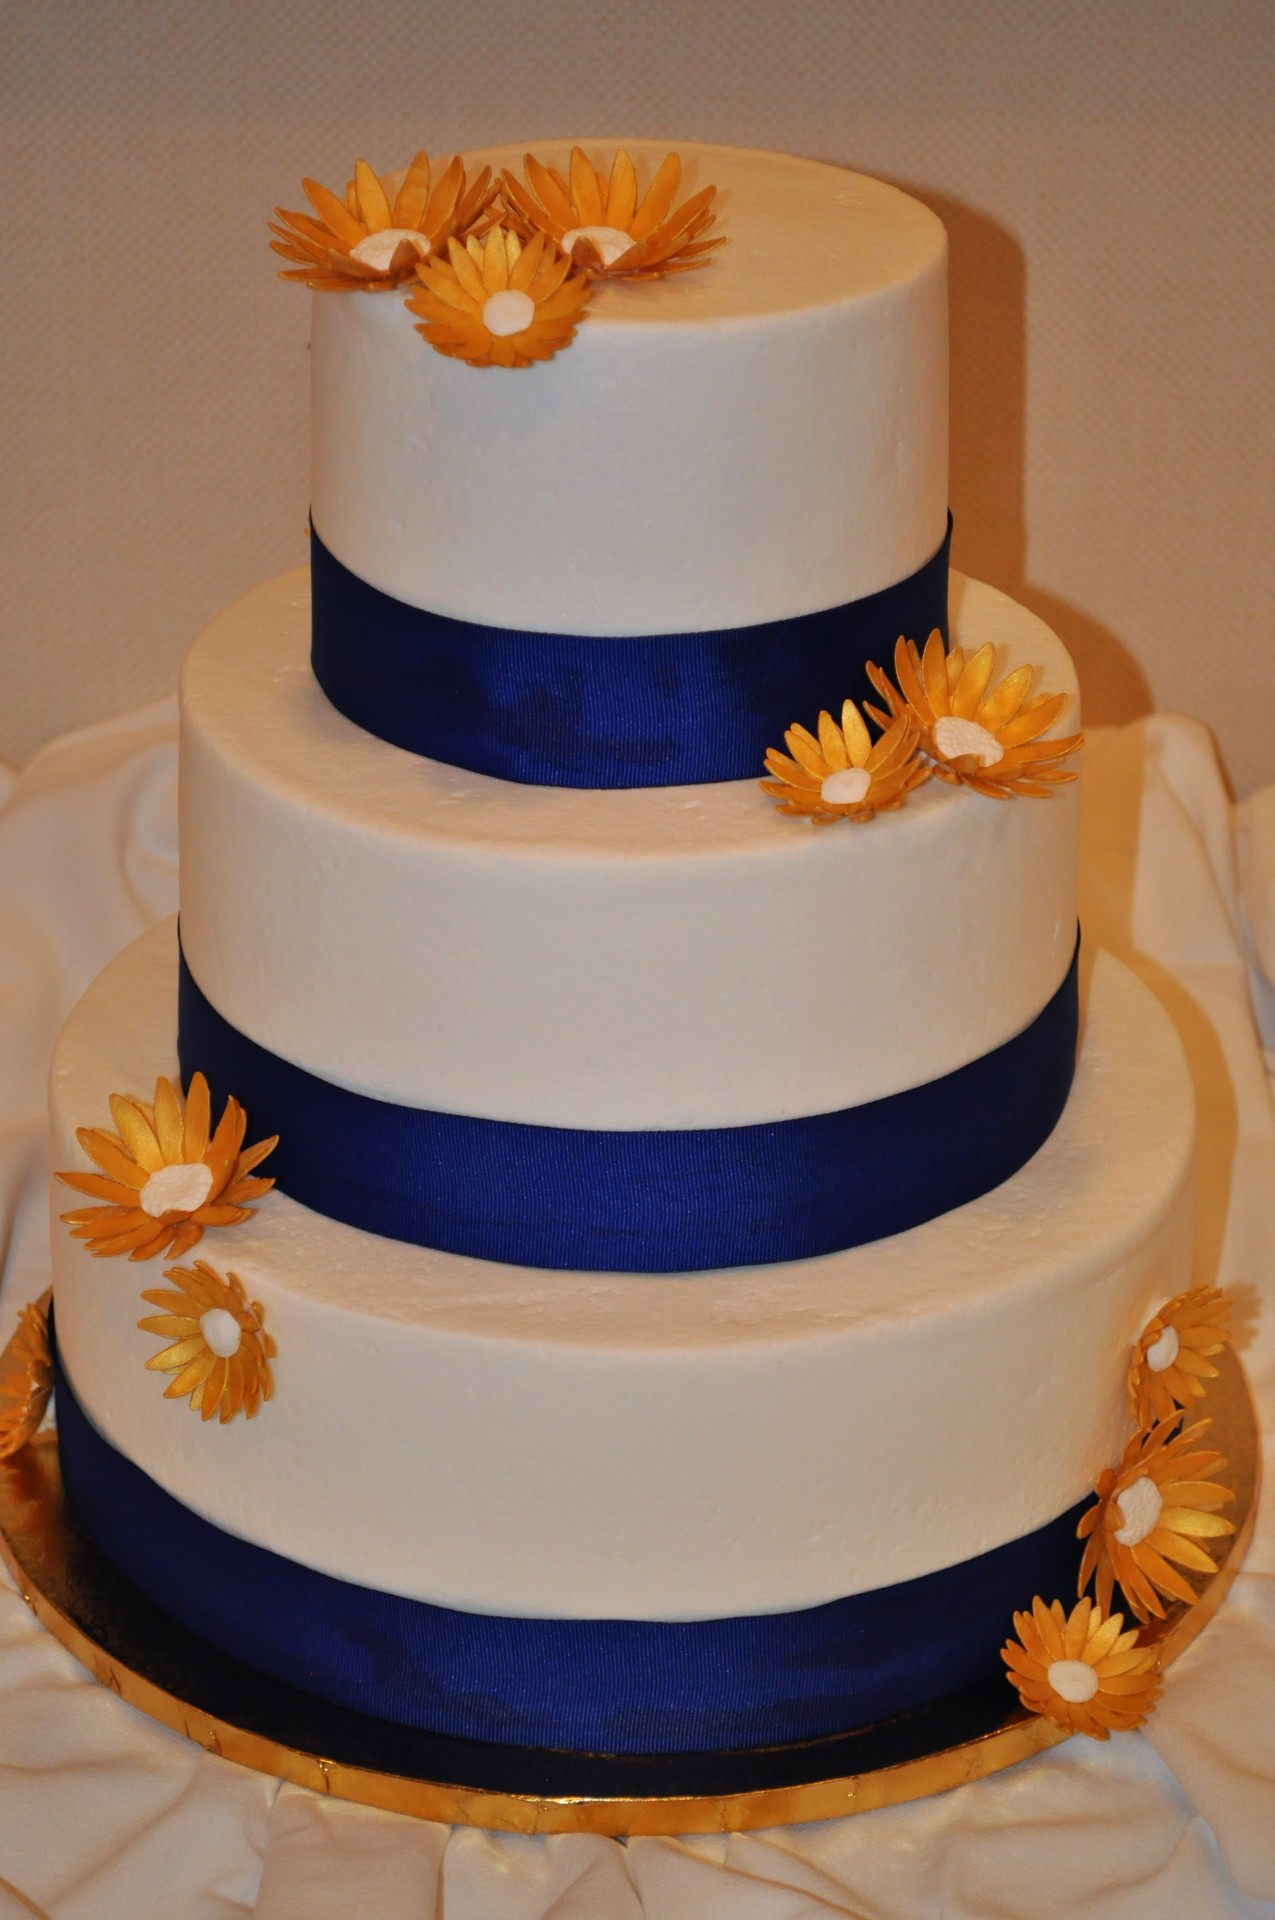 Simple buttercream with gold daisies